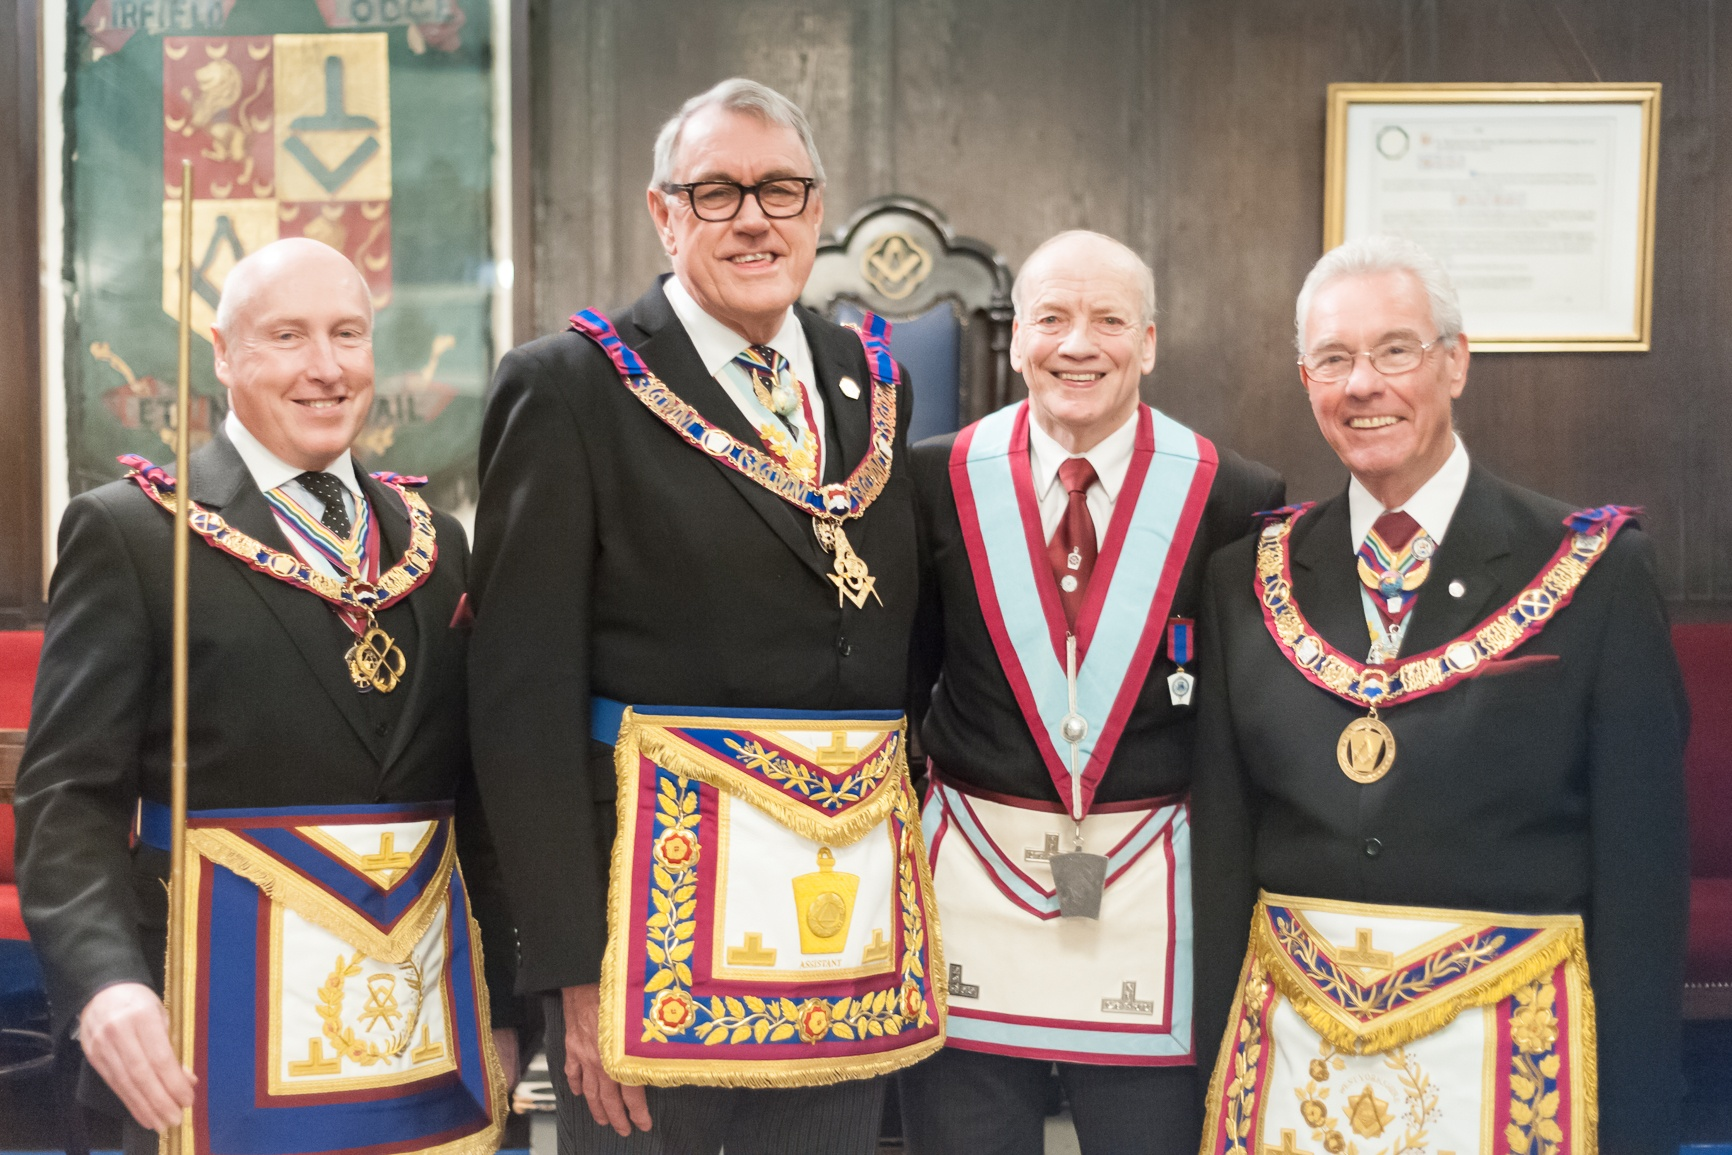 The Magic of the Mark, a celebration at Fearnley Lodge of MMM No, 58.